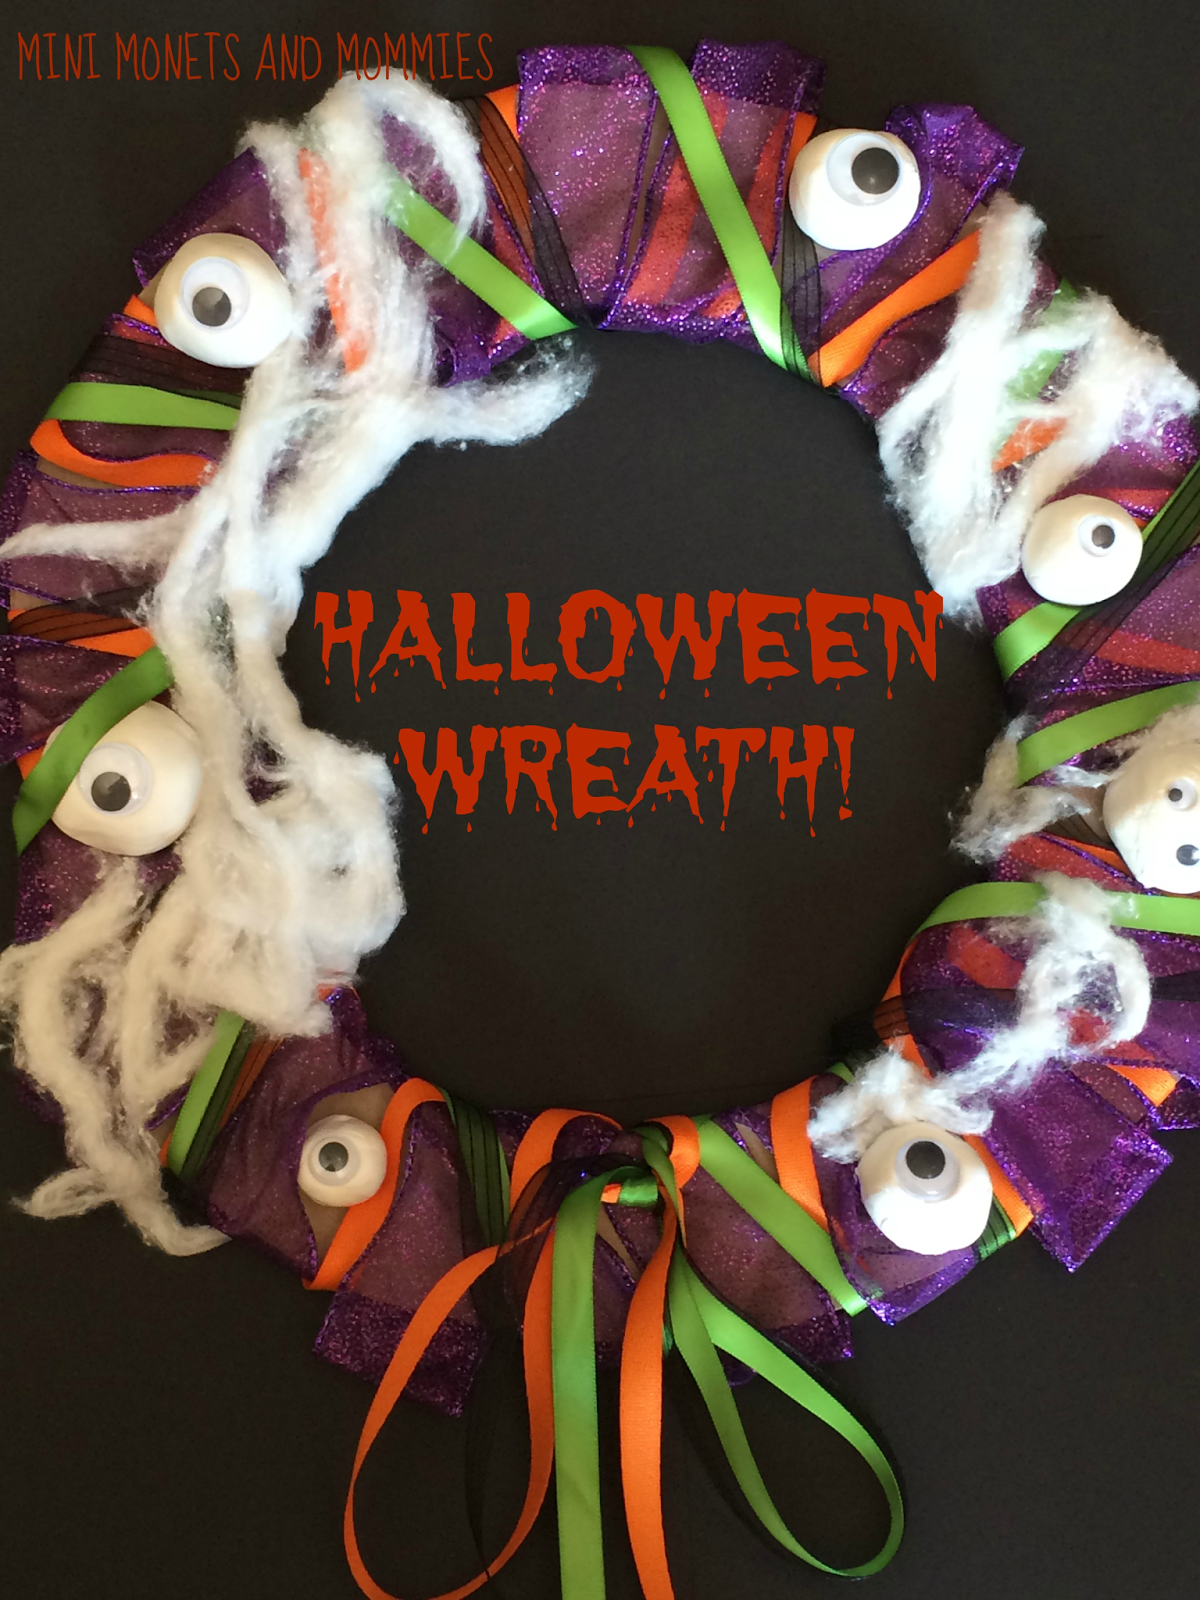 Kids' Halloween Wreath Craft